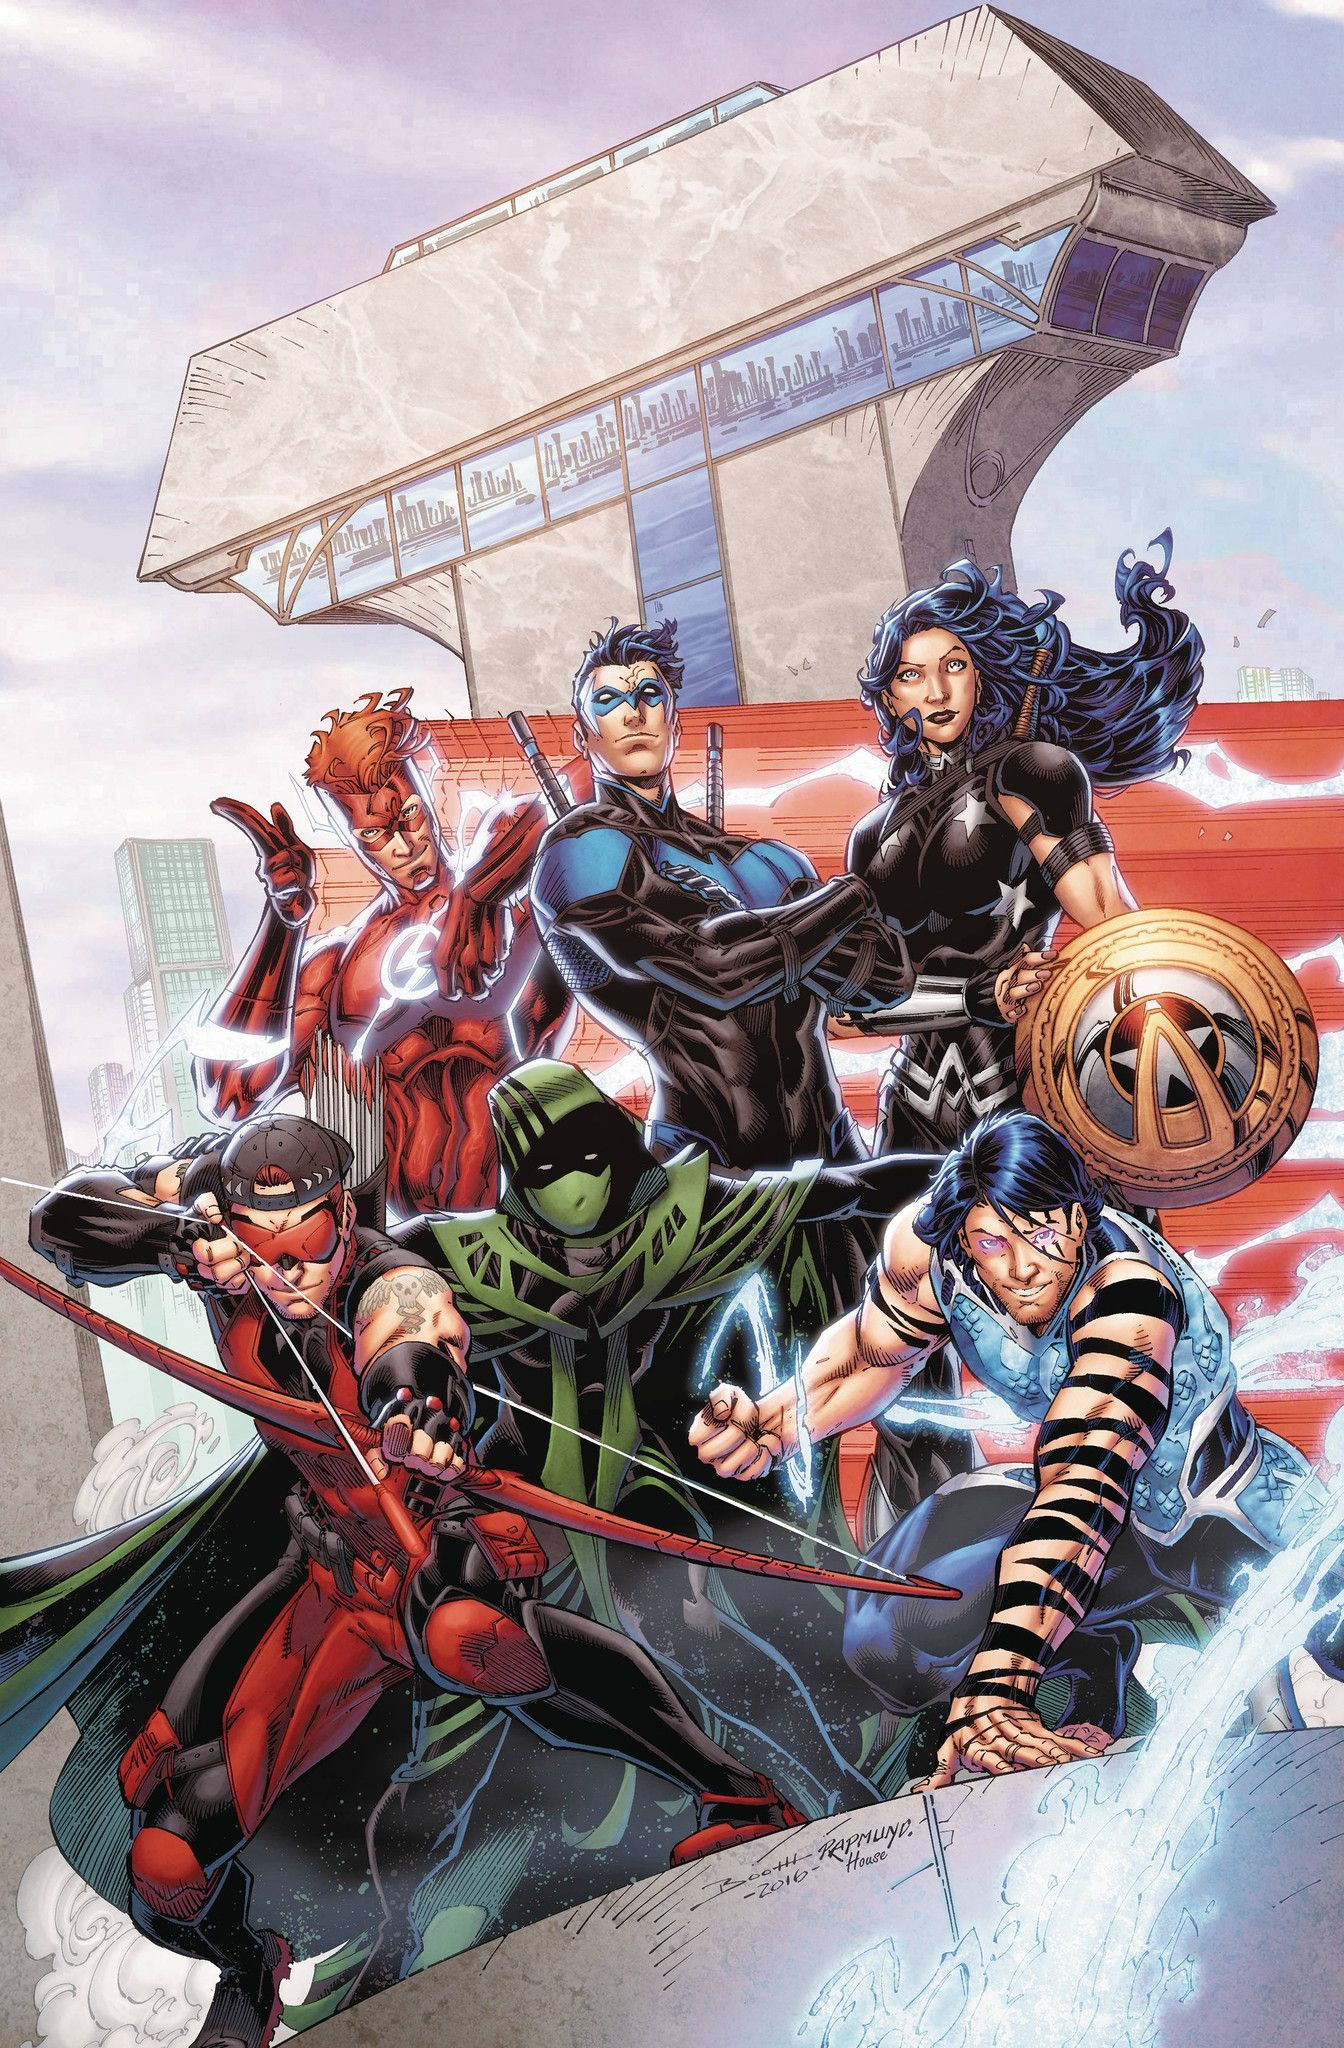 Cartoon Characters 8 Letters : Titans #8 marvel dc pinterest comic teen titans and superheroes